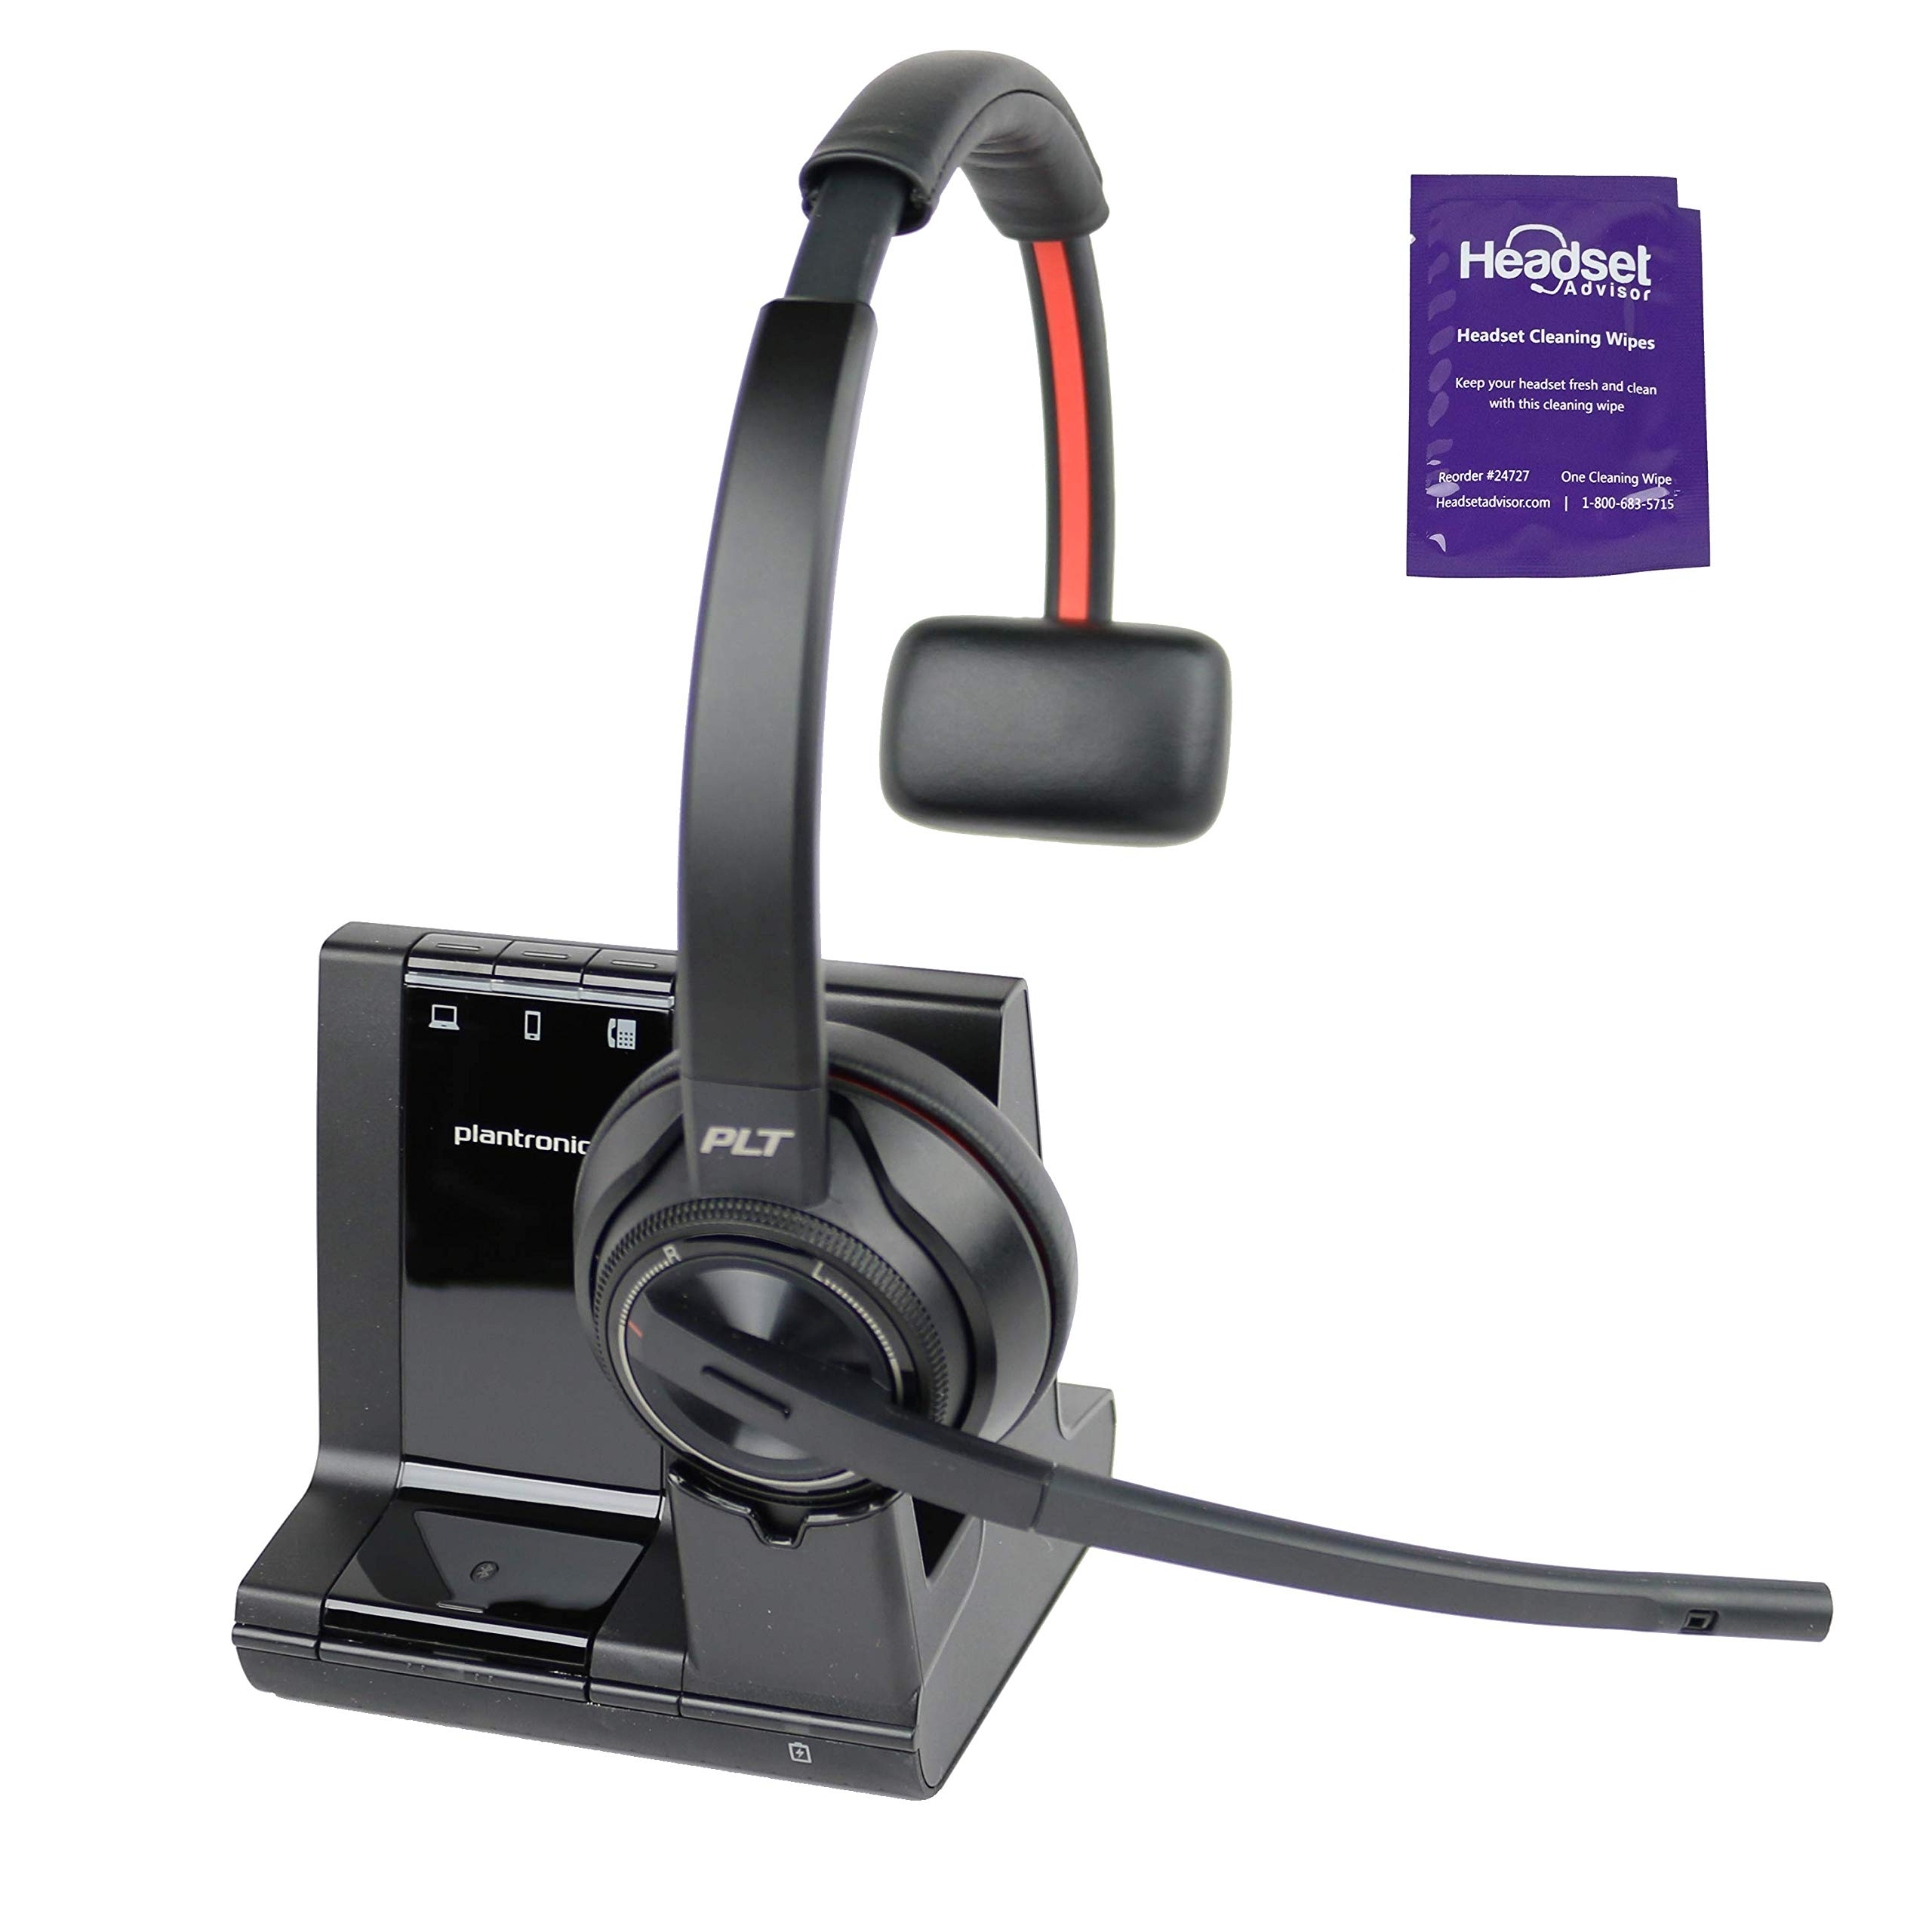 Plantronics Savi 8210 Wireless DECT Headset System Bundle with Headset Advisor Wipe- Compatible with PC, Mobile and Desk Phone